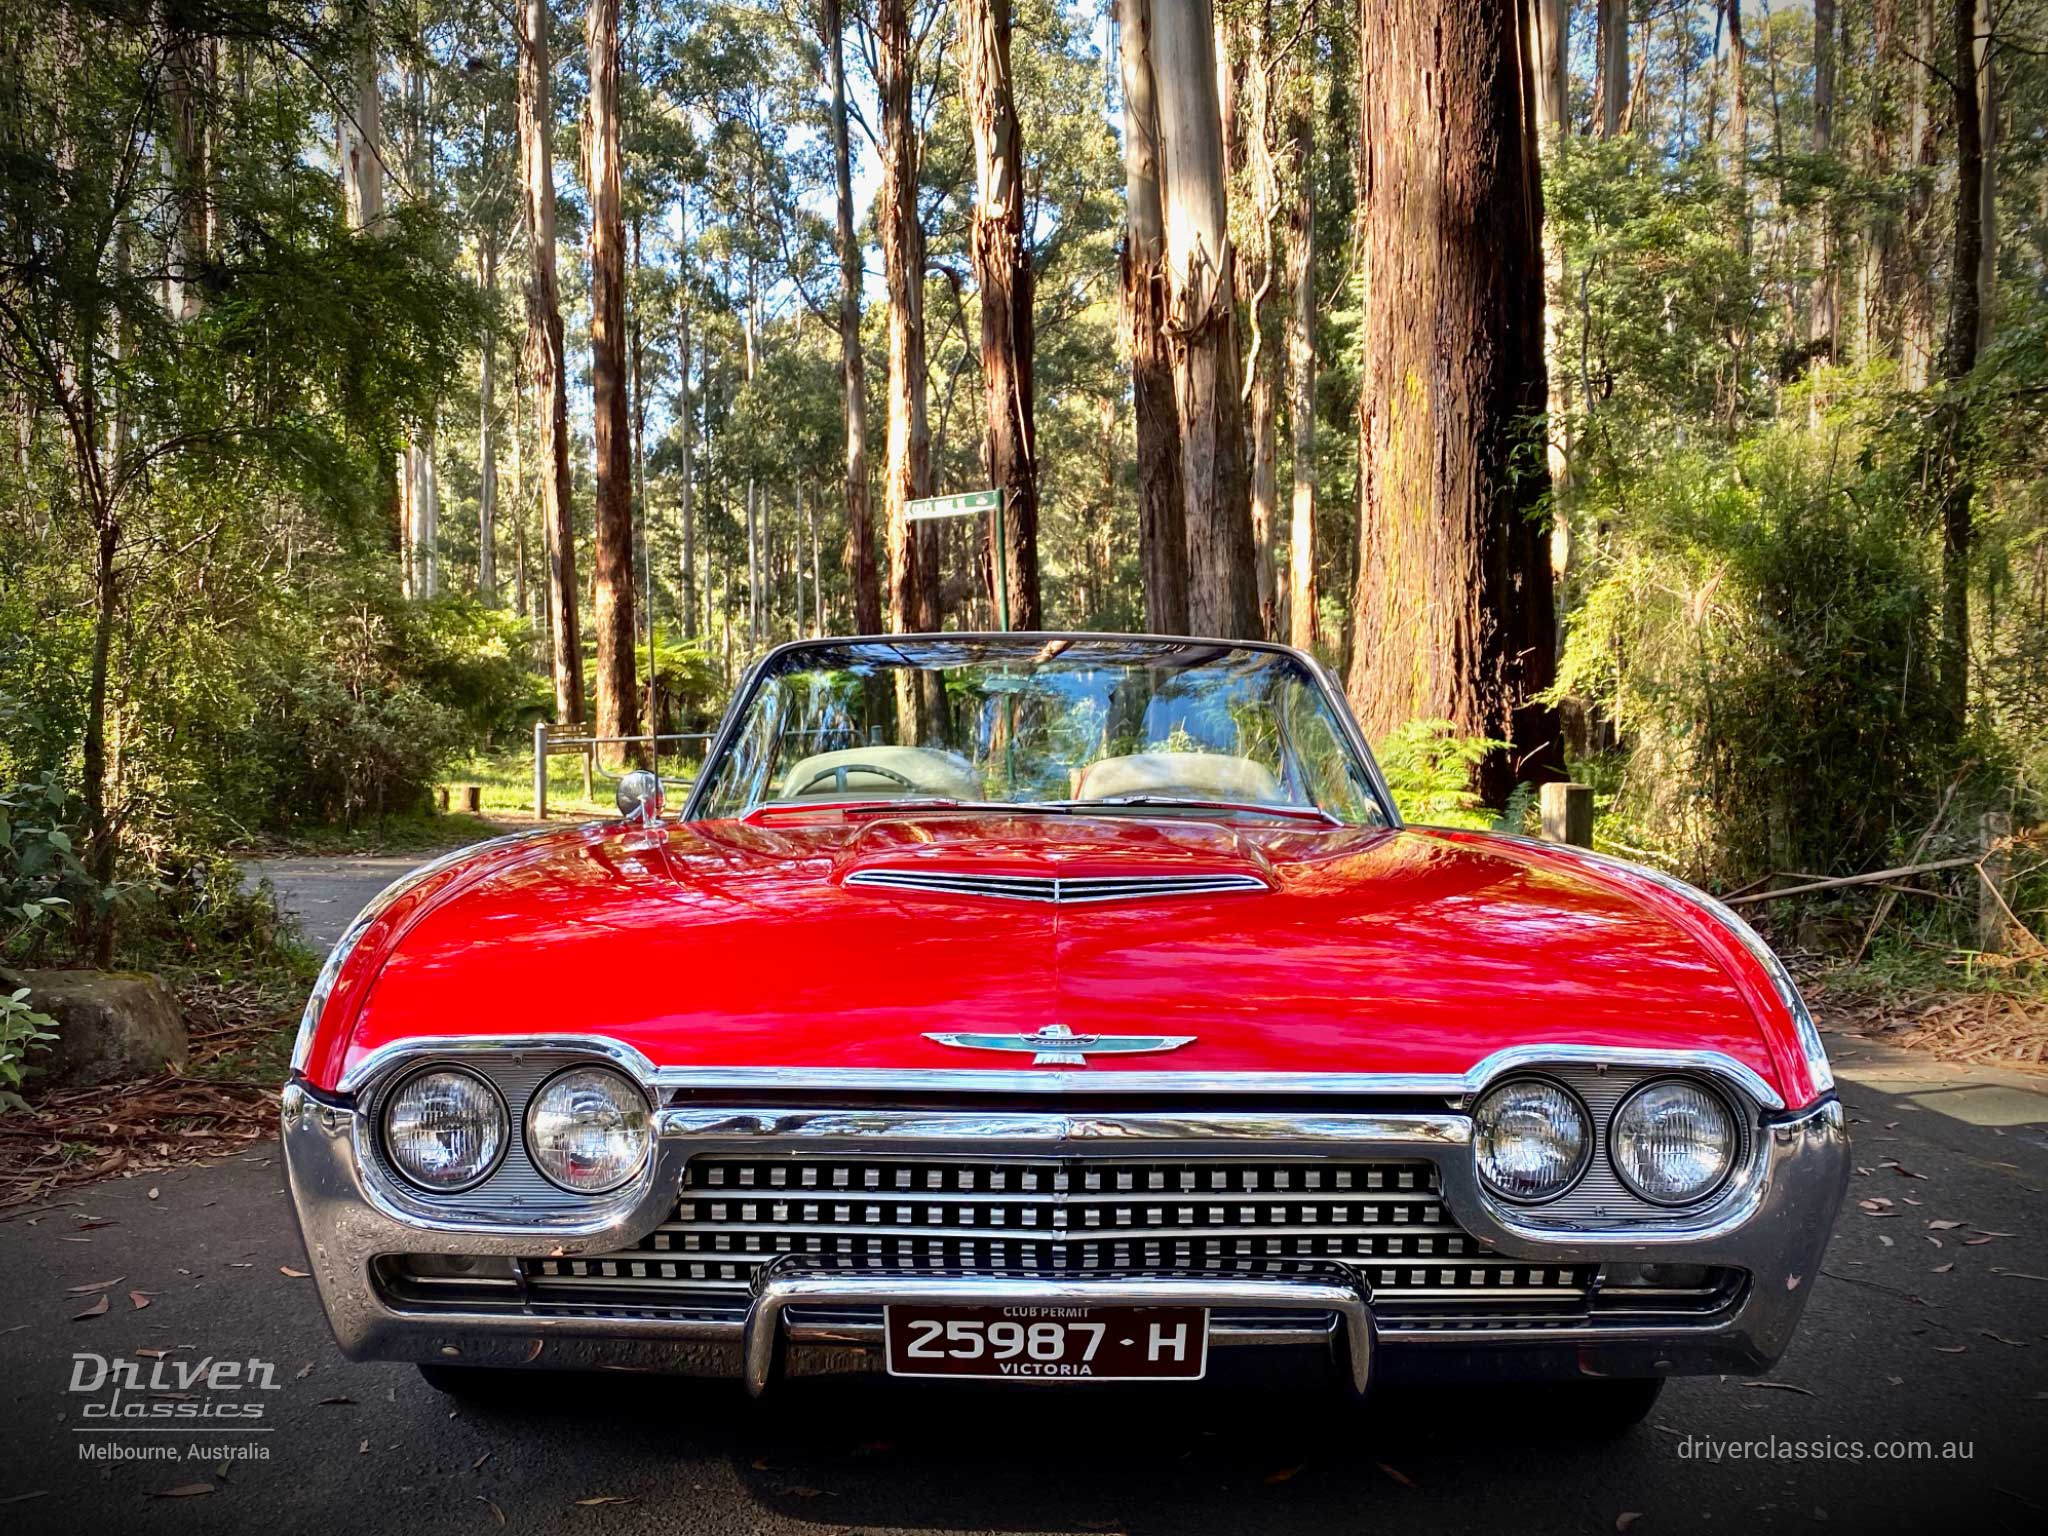 Ford Thunderbird Roadster 1962 version, front close up, Dandenong Ranges, Grants Picnic ground, Photo taken Dec 2019